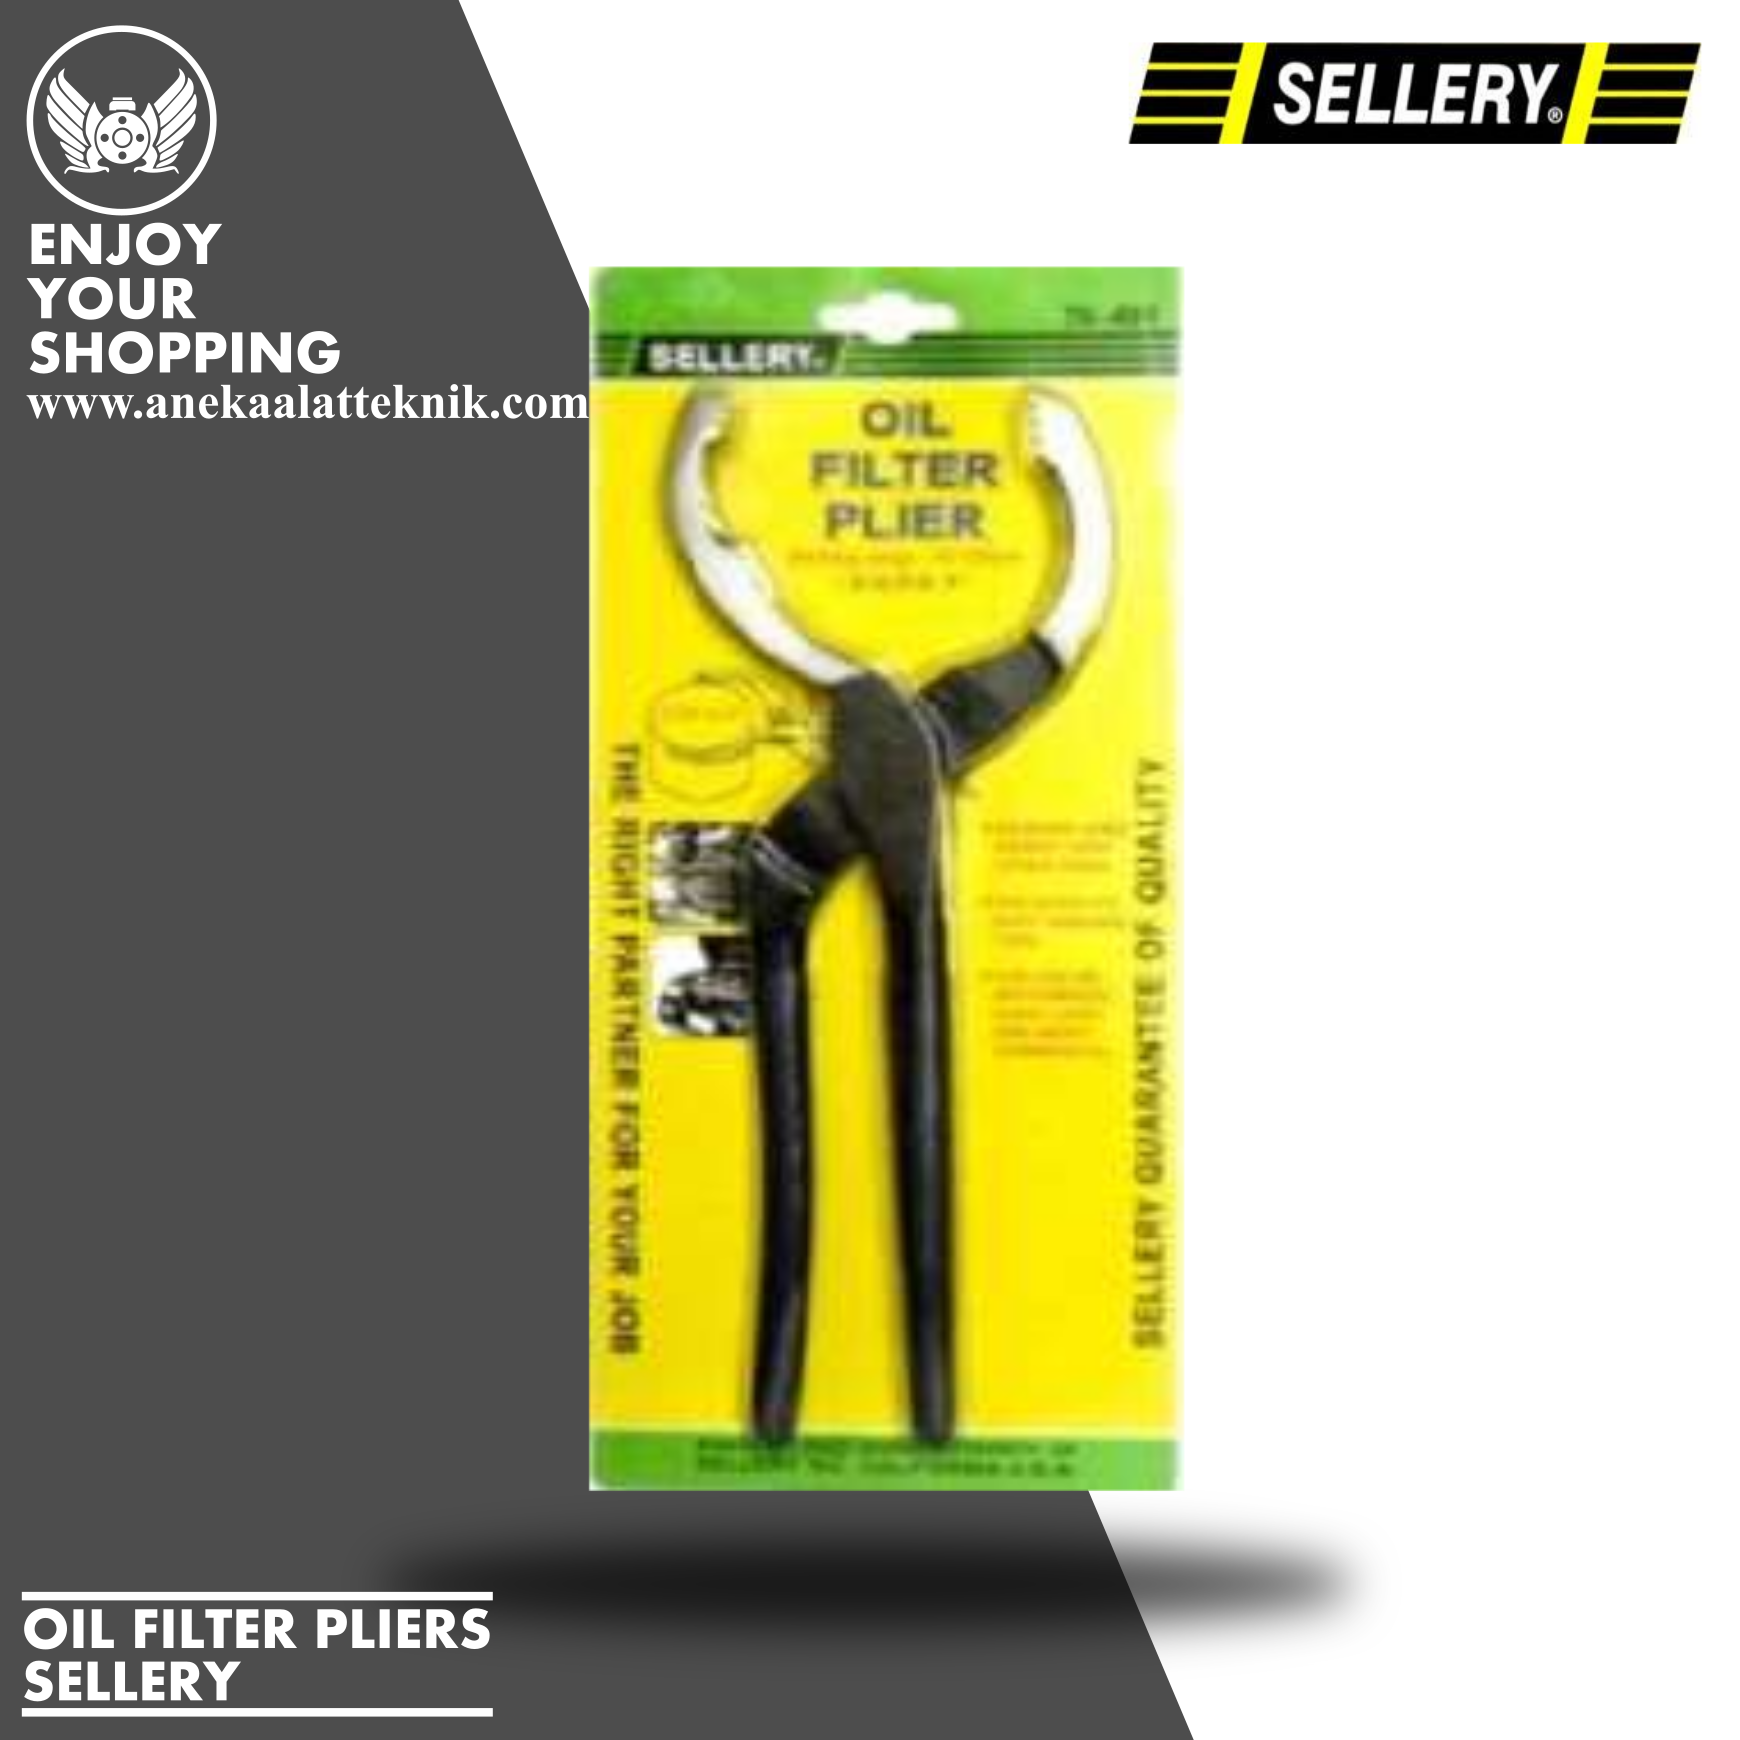 OIL FILTER PLIERS 78-401